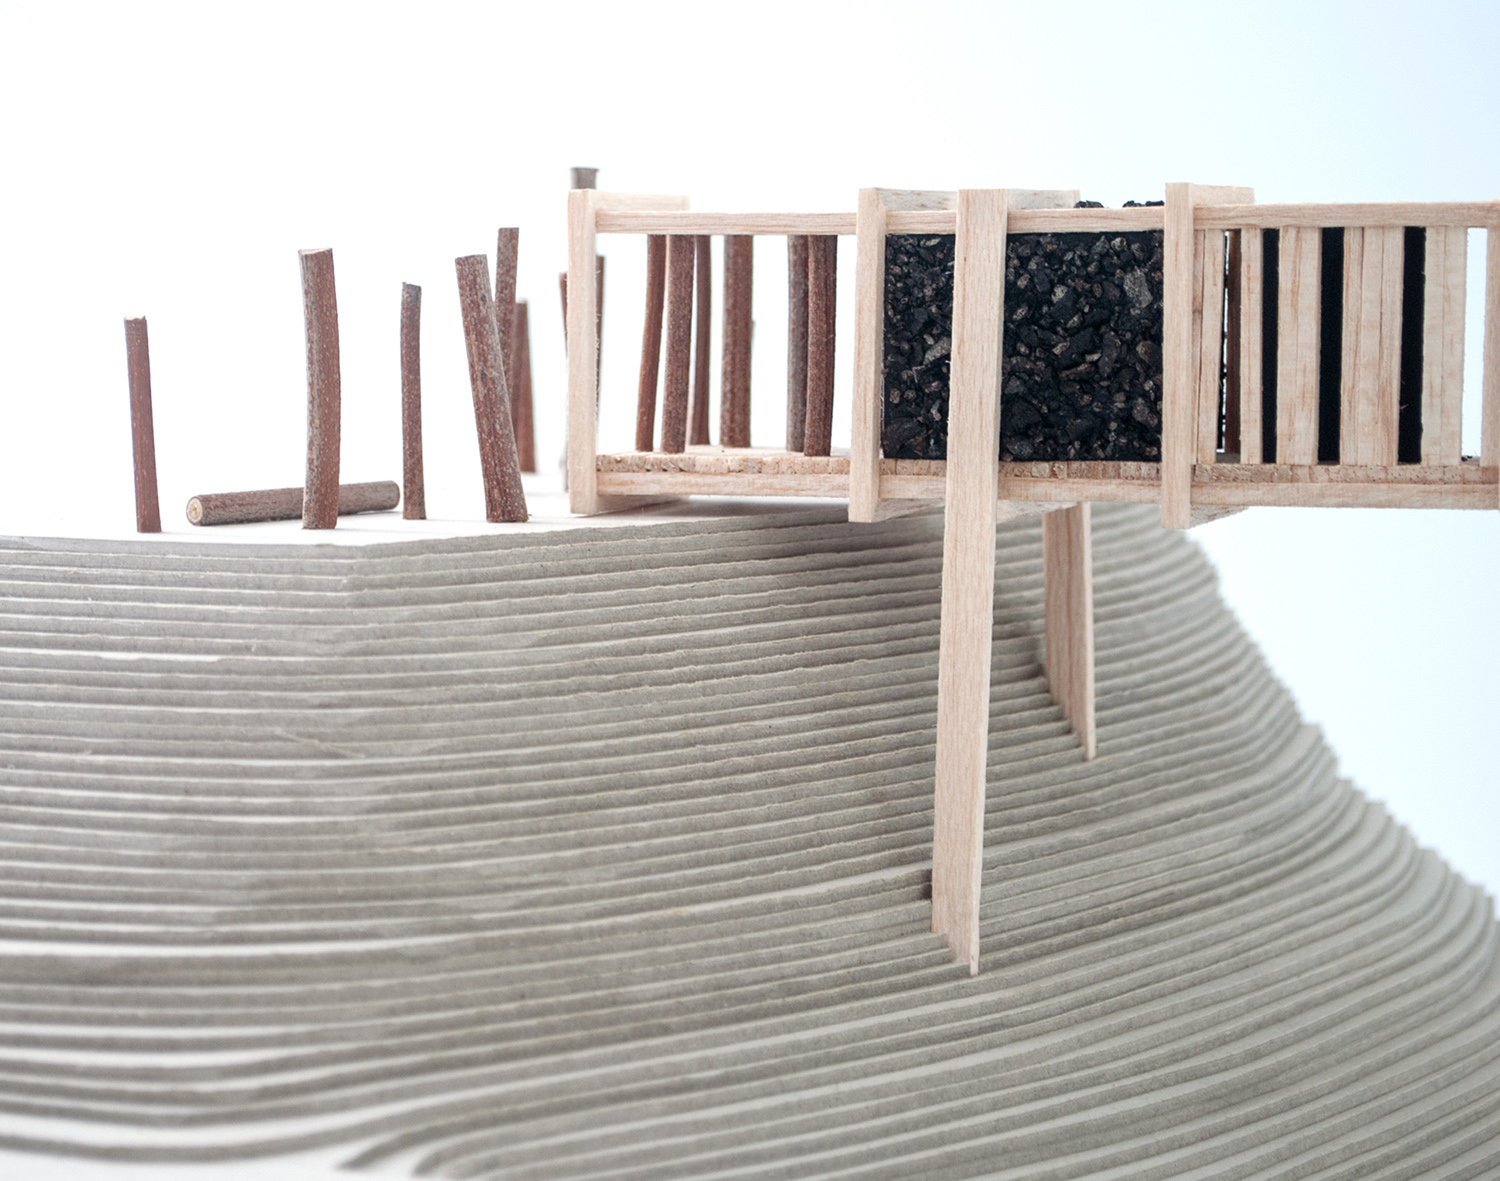 microcosme_con_form_architects_model 05.jpg